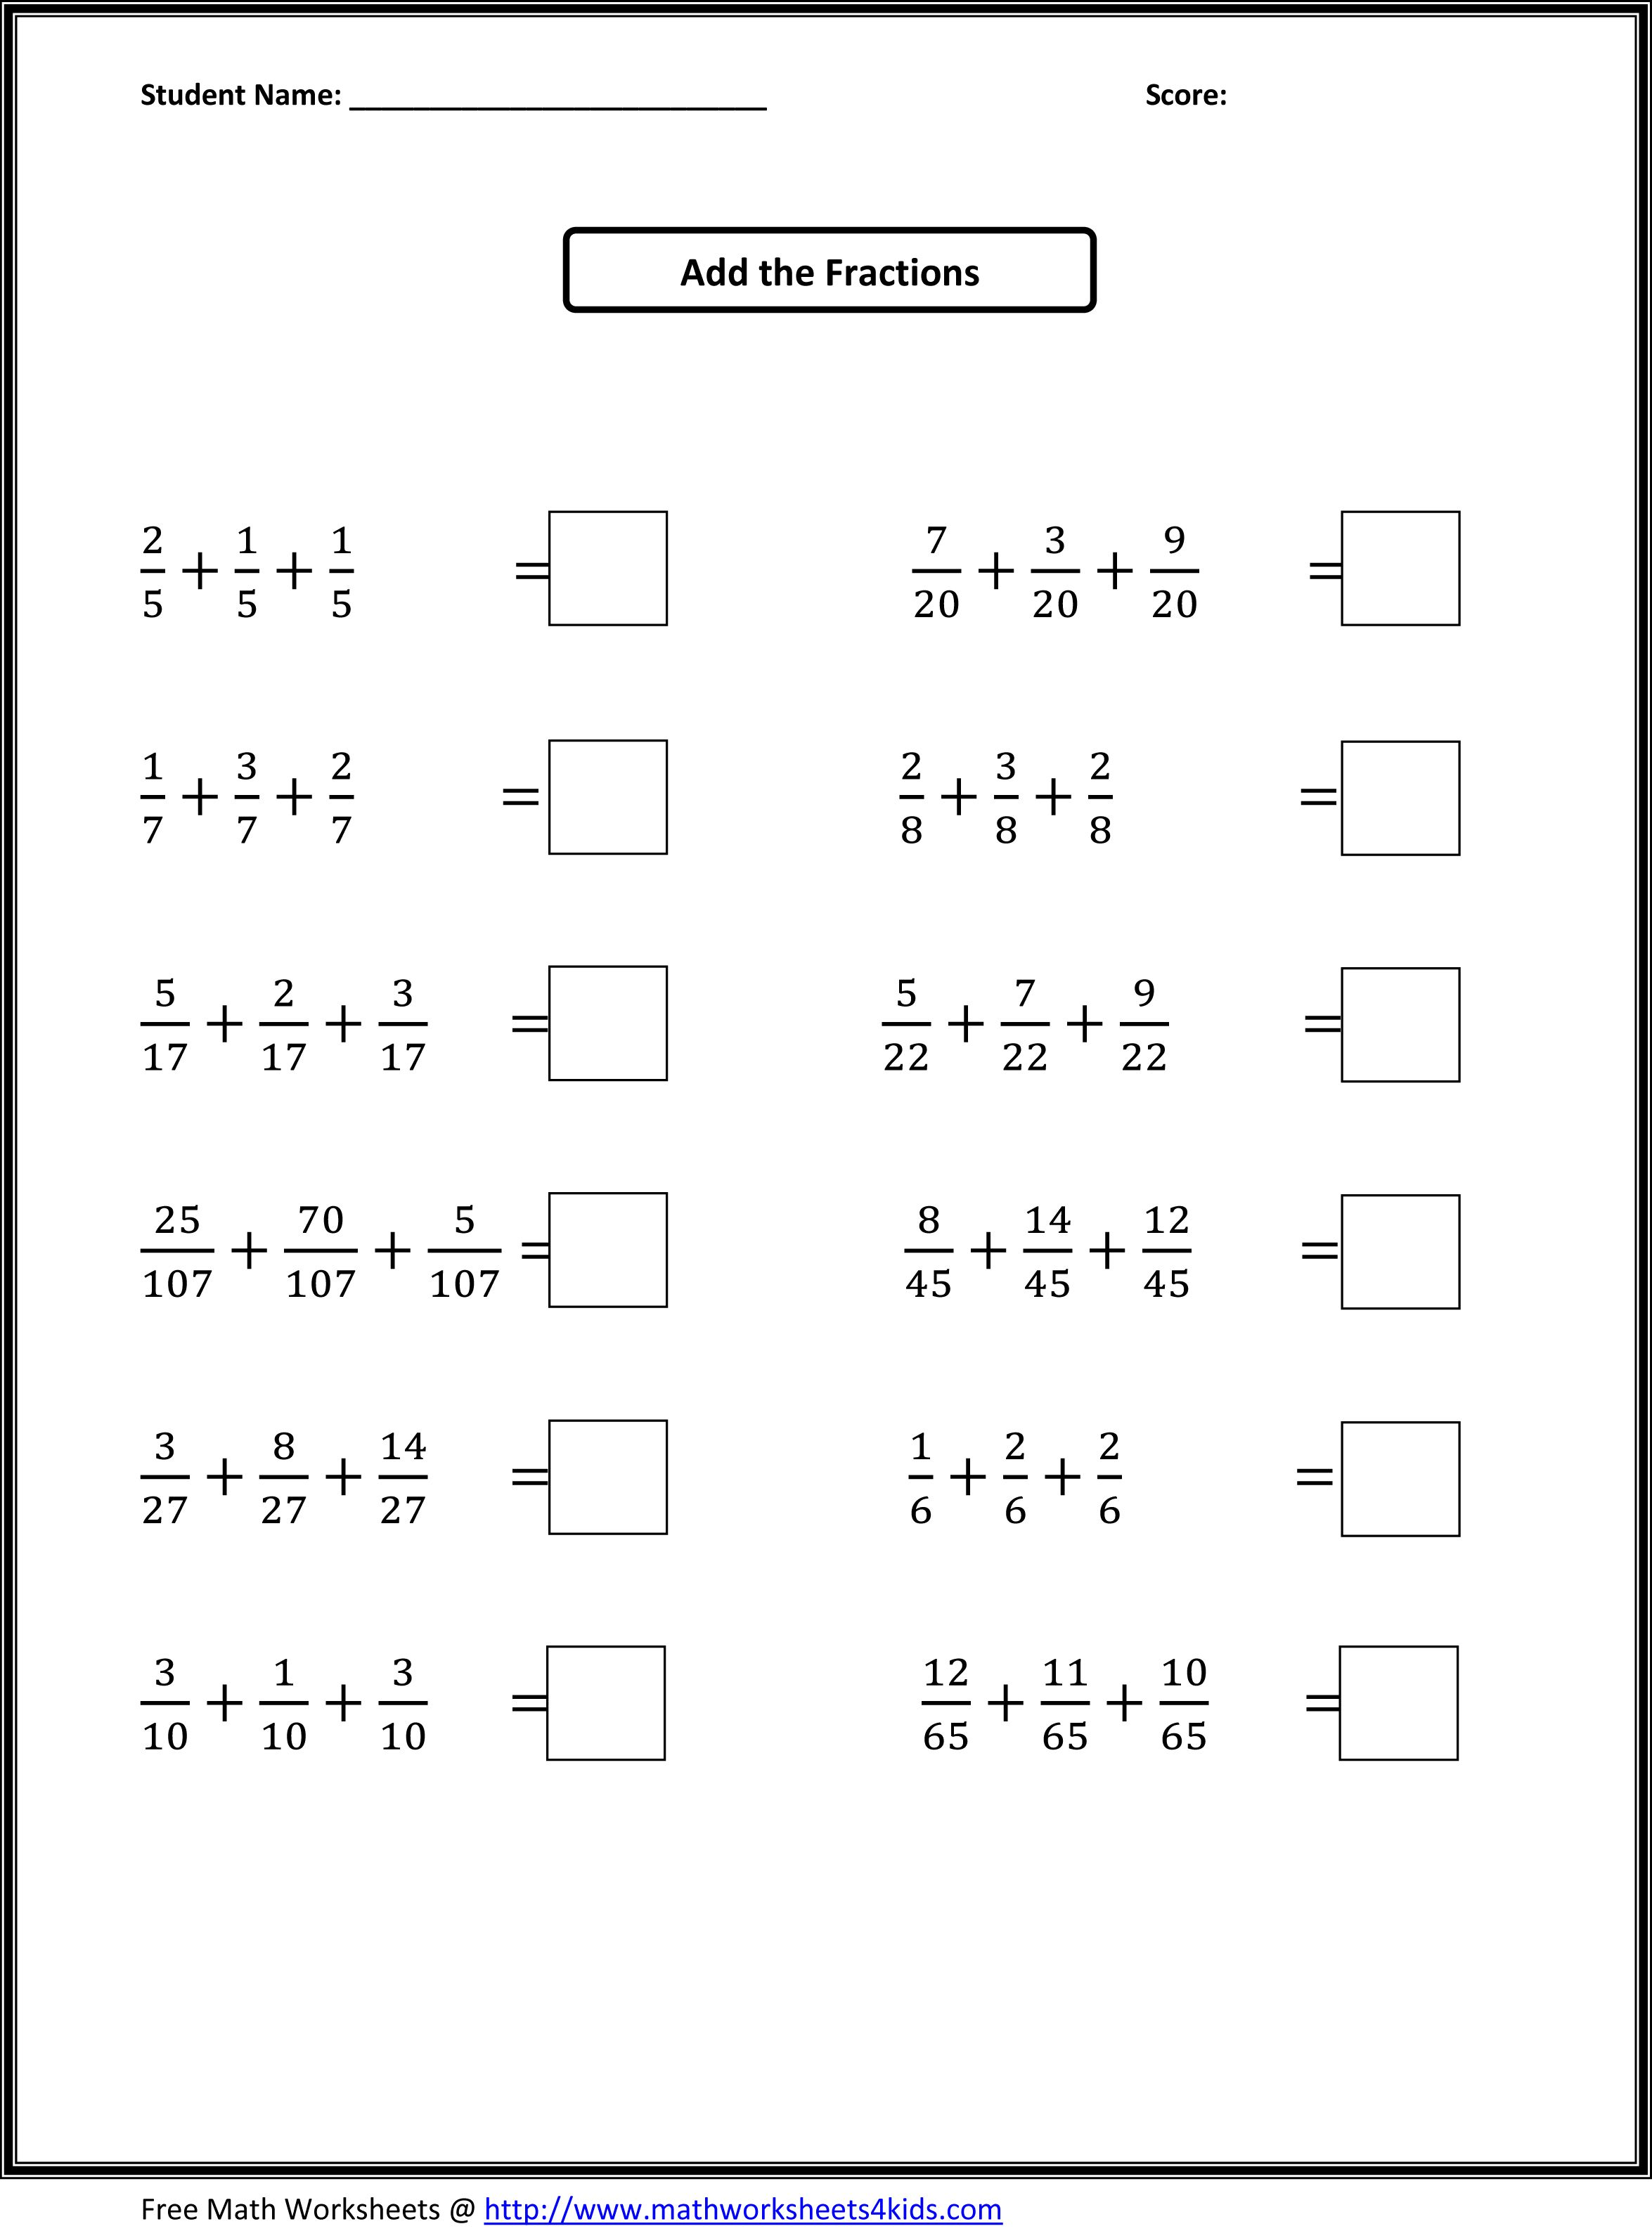 Worksheet Worksheets For 4th Grade Math 1000 images about math worksheets on pinterest 4th grade geometry and math